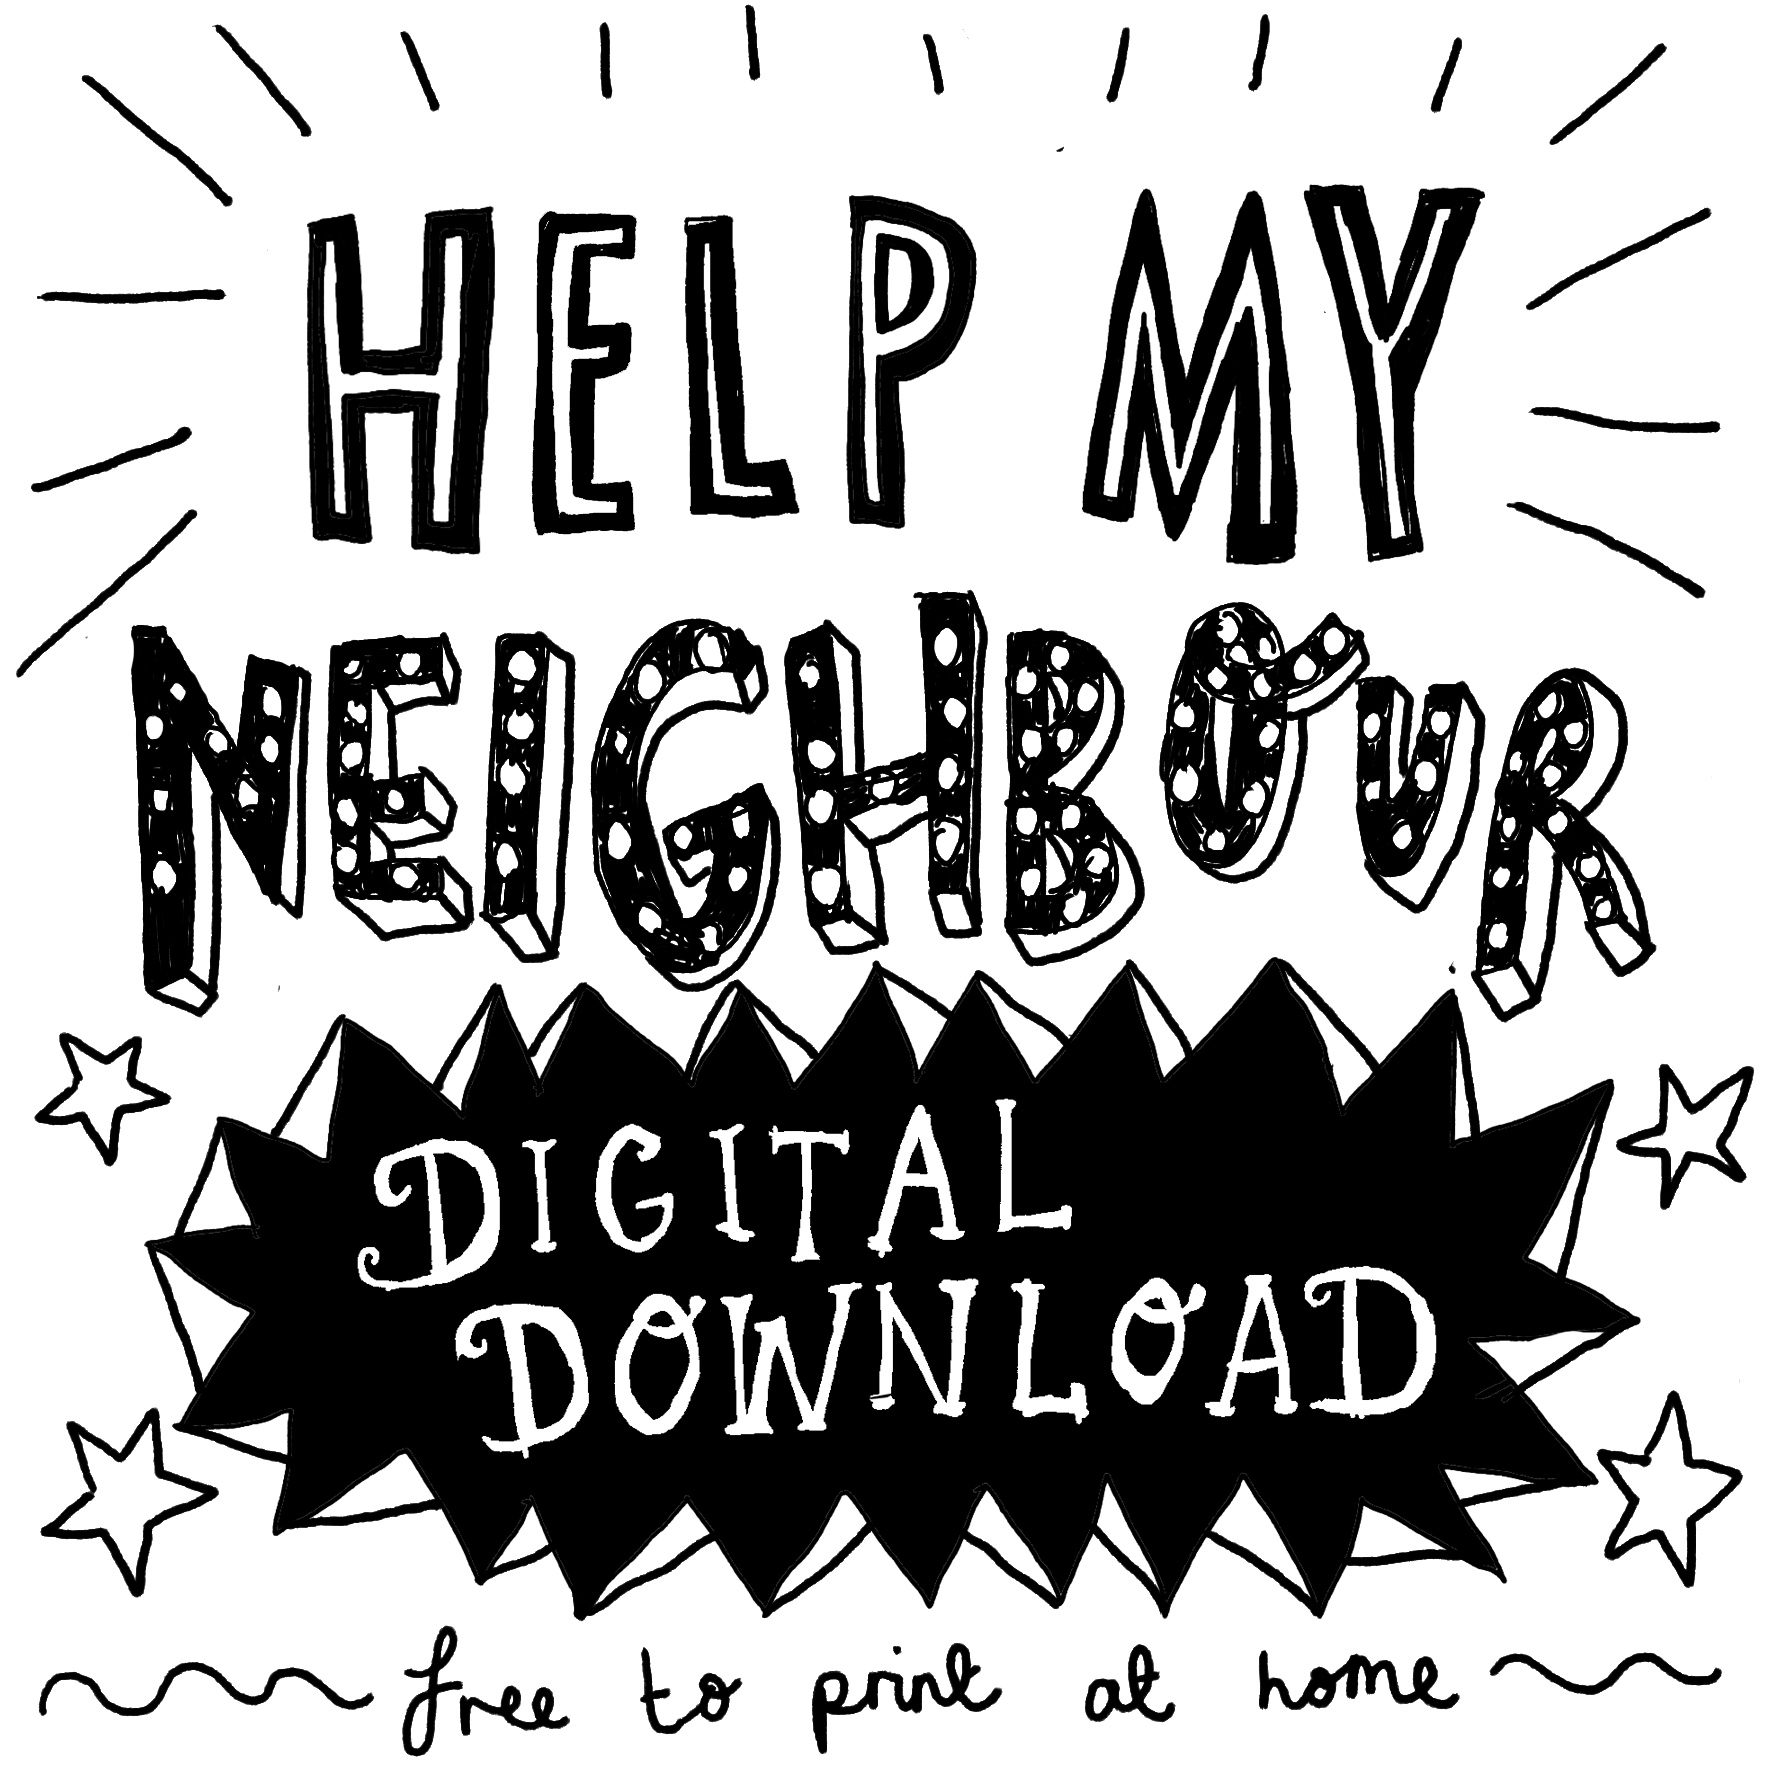 Help-my-neighbour-digital-download-cover-image